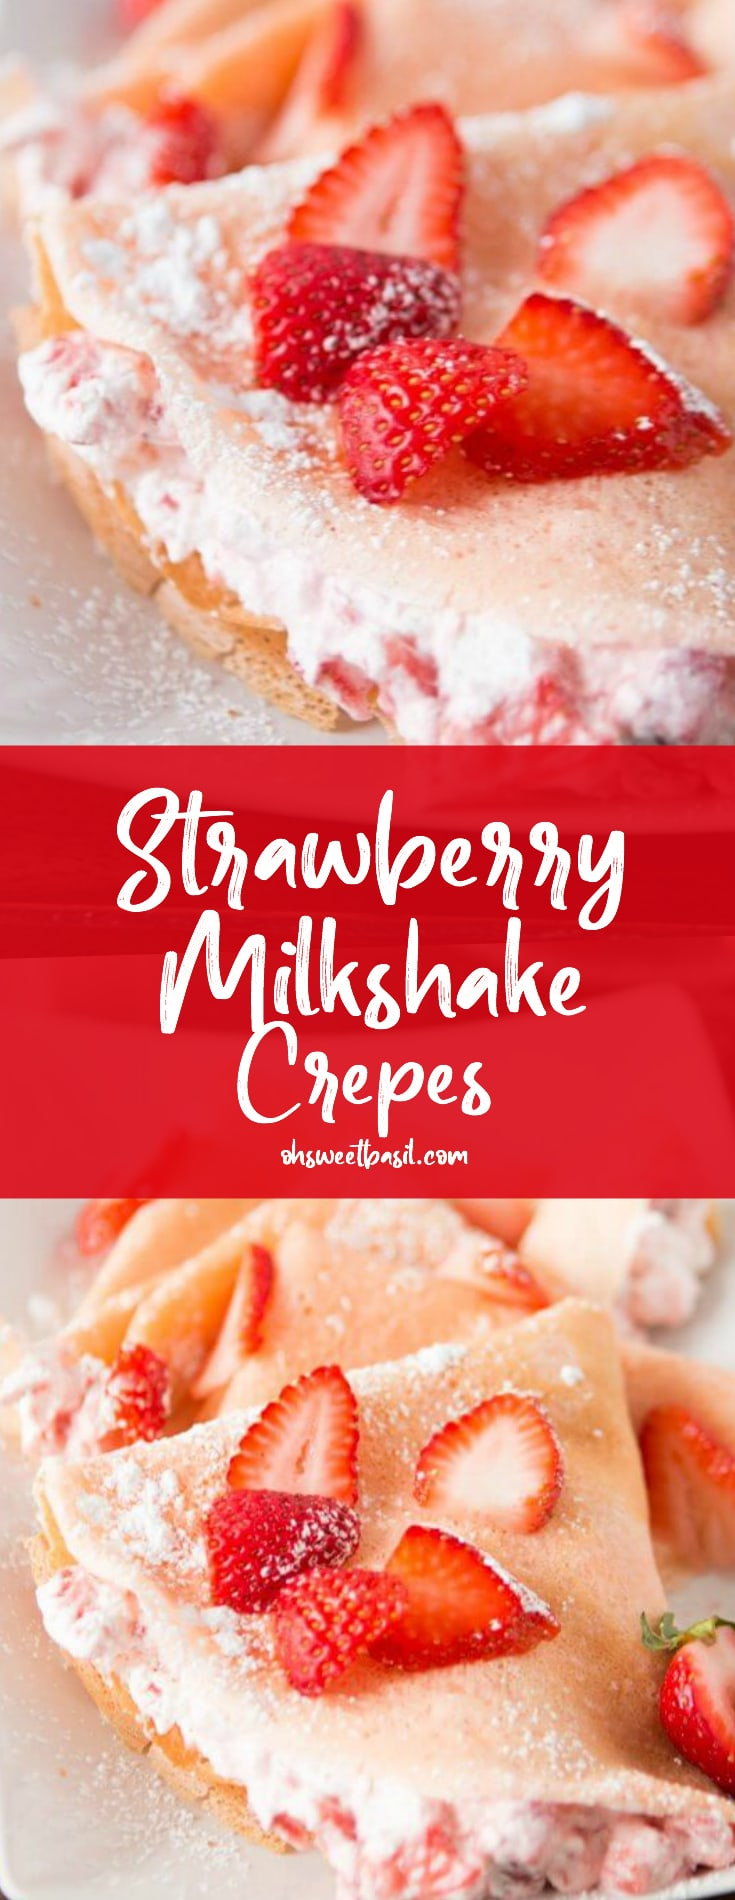 Strawberry Milkshake Crepes with fresh strawberries on top